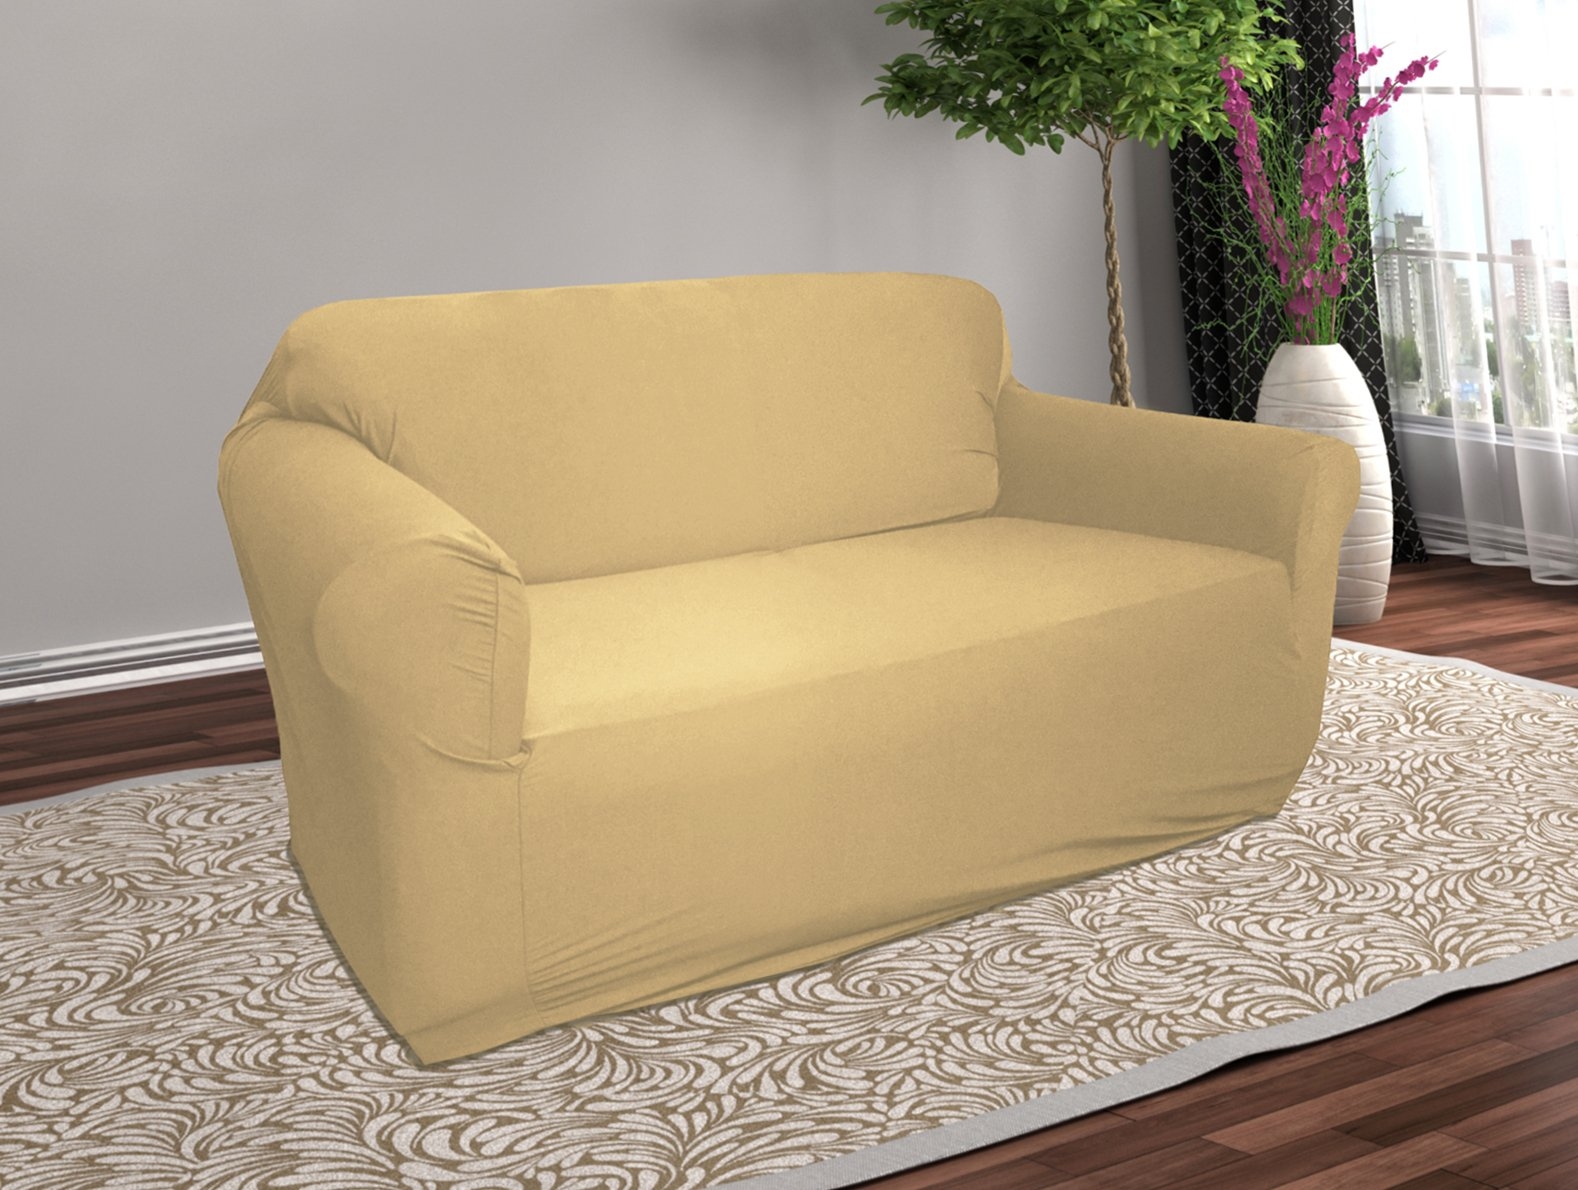 Linen Store Stretch Jersey Slipcover, Soft Form Fitting, Solid Color (LOVESEAT, TAN)